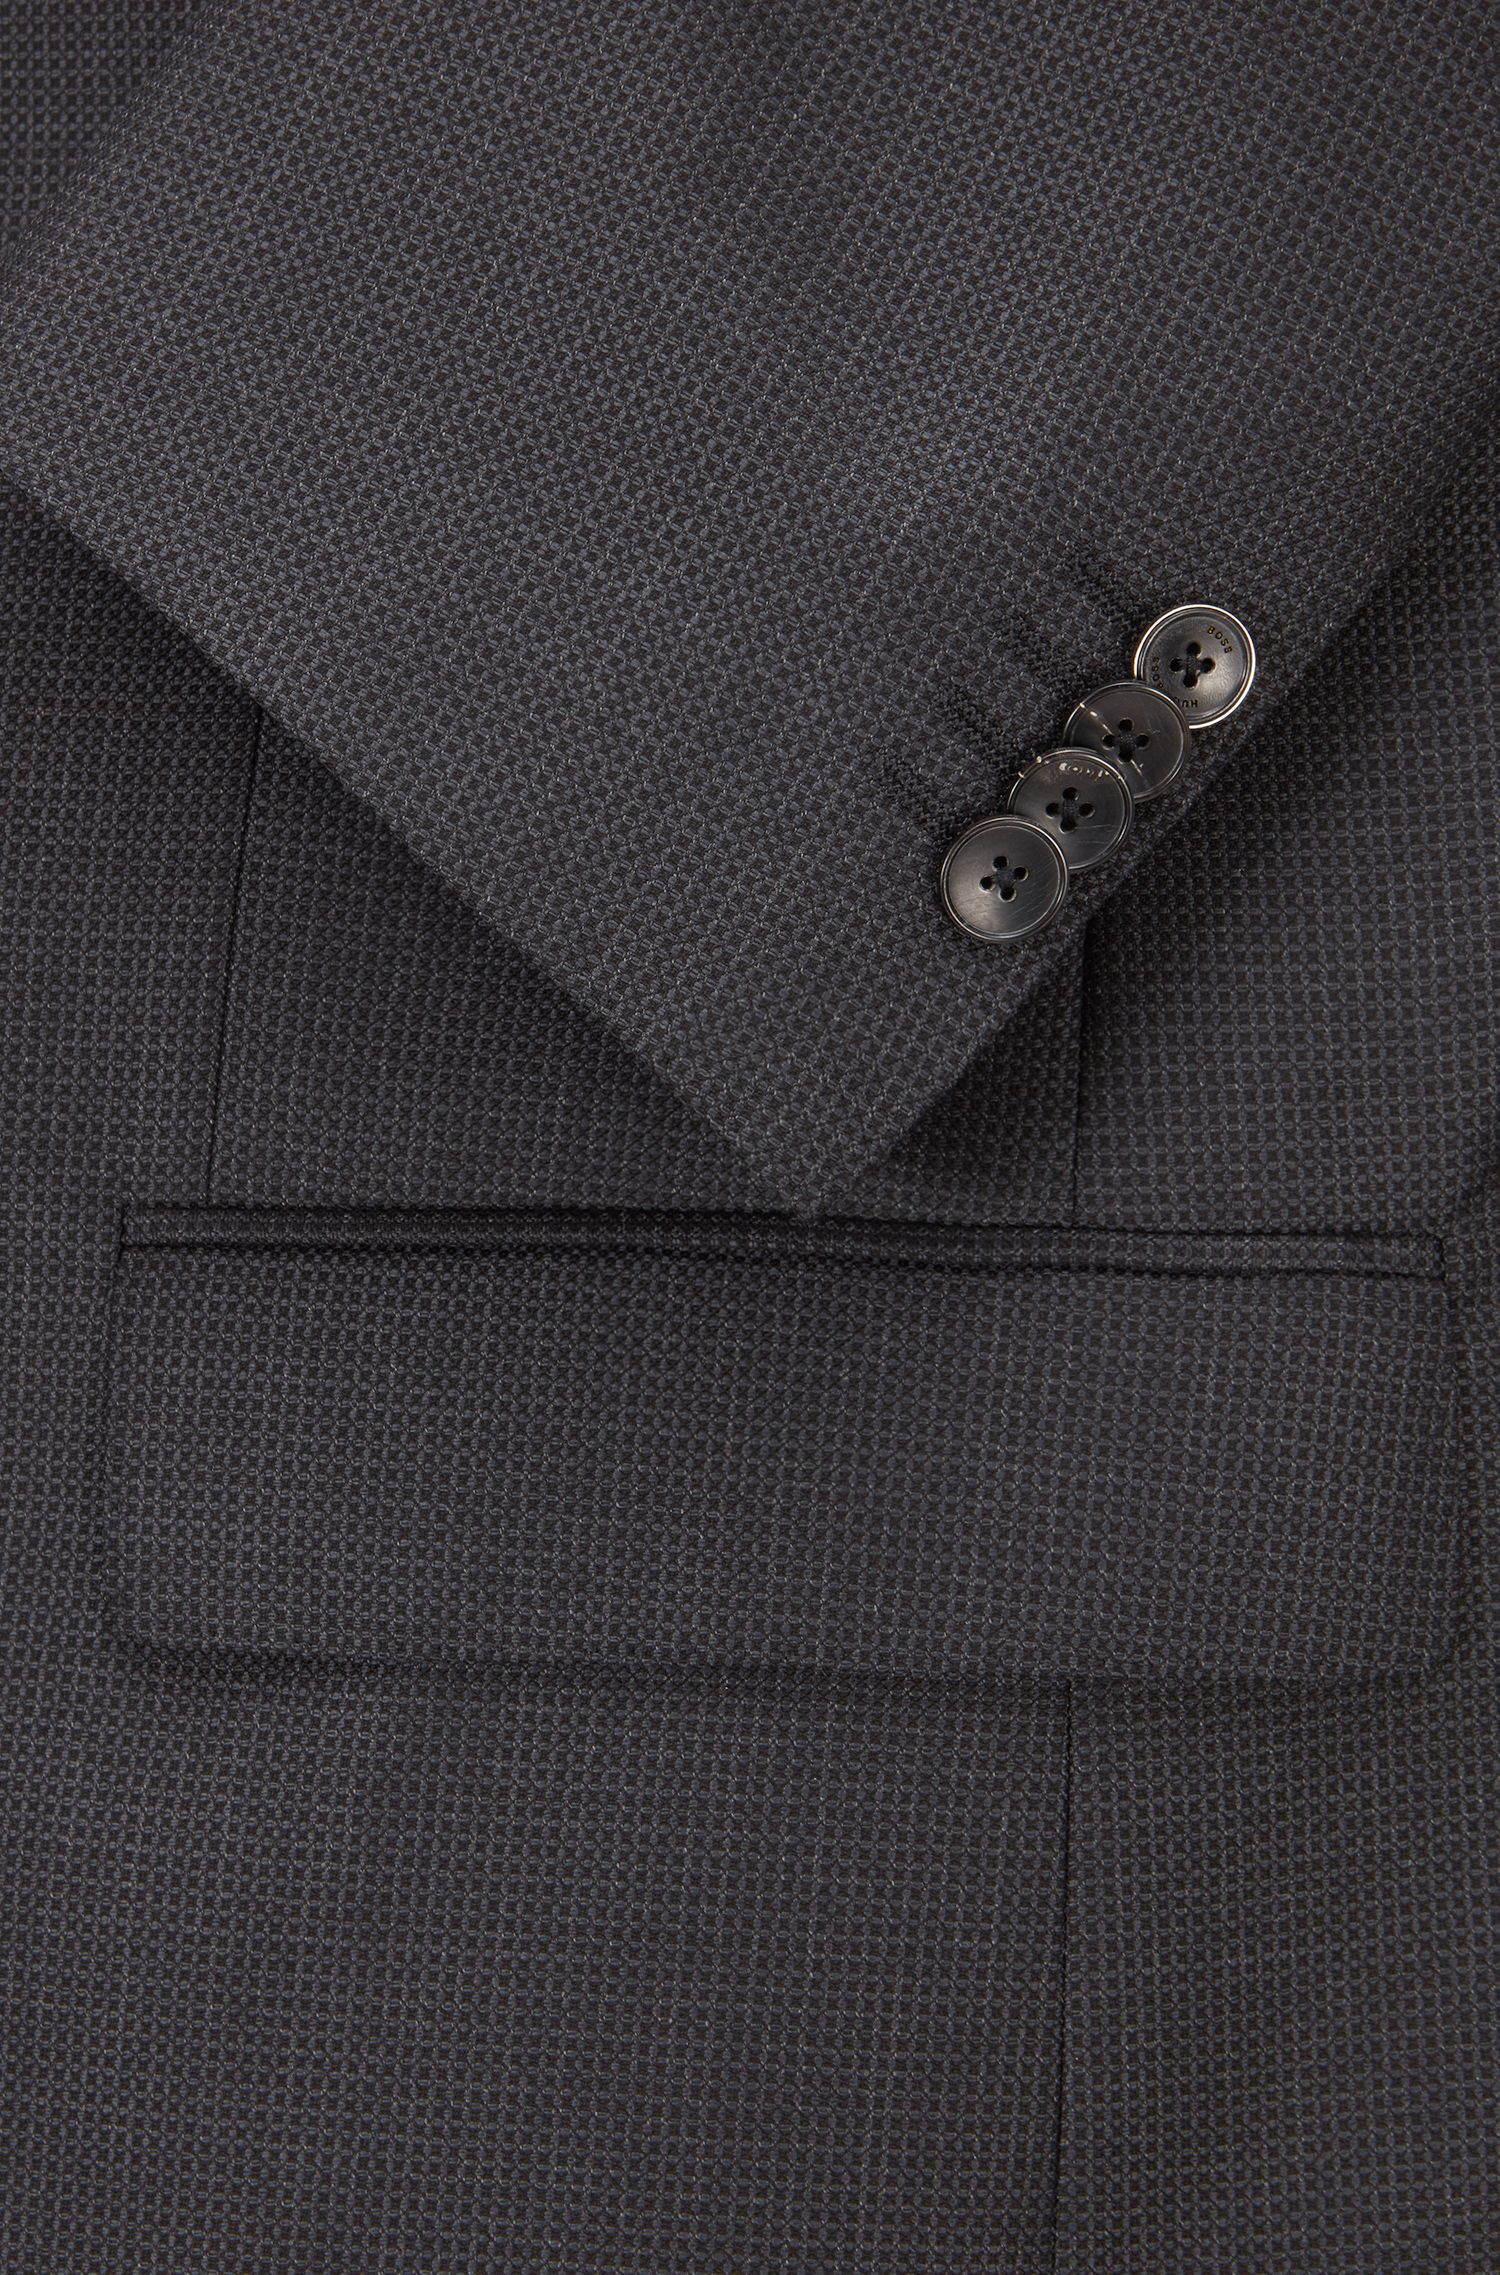 Nailhead Virgin Wool 3-Piece Suit, Slim Fit | Huge/Genius WE